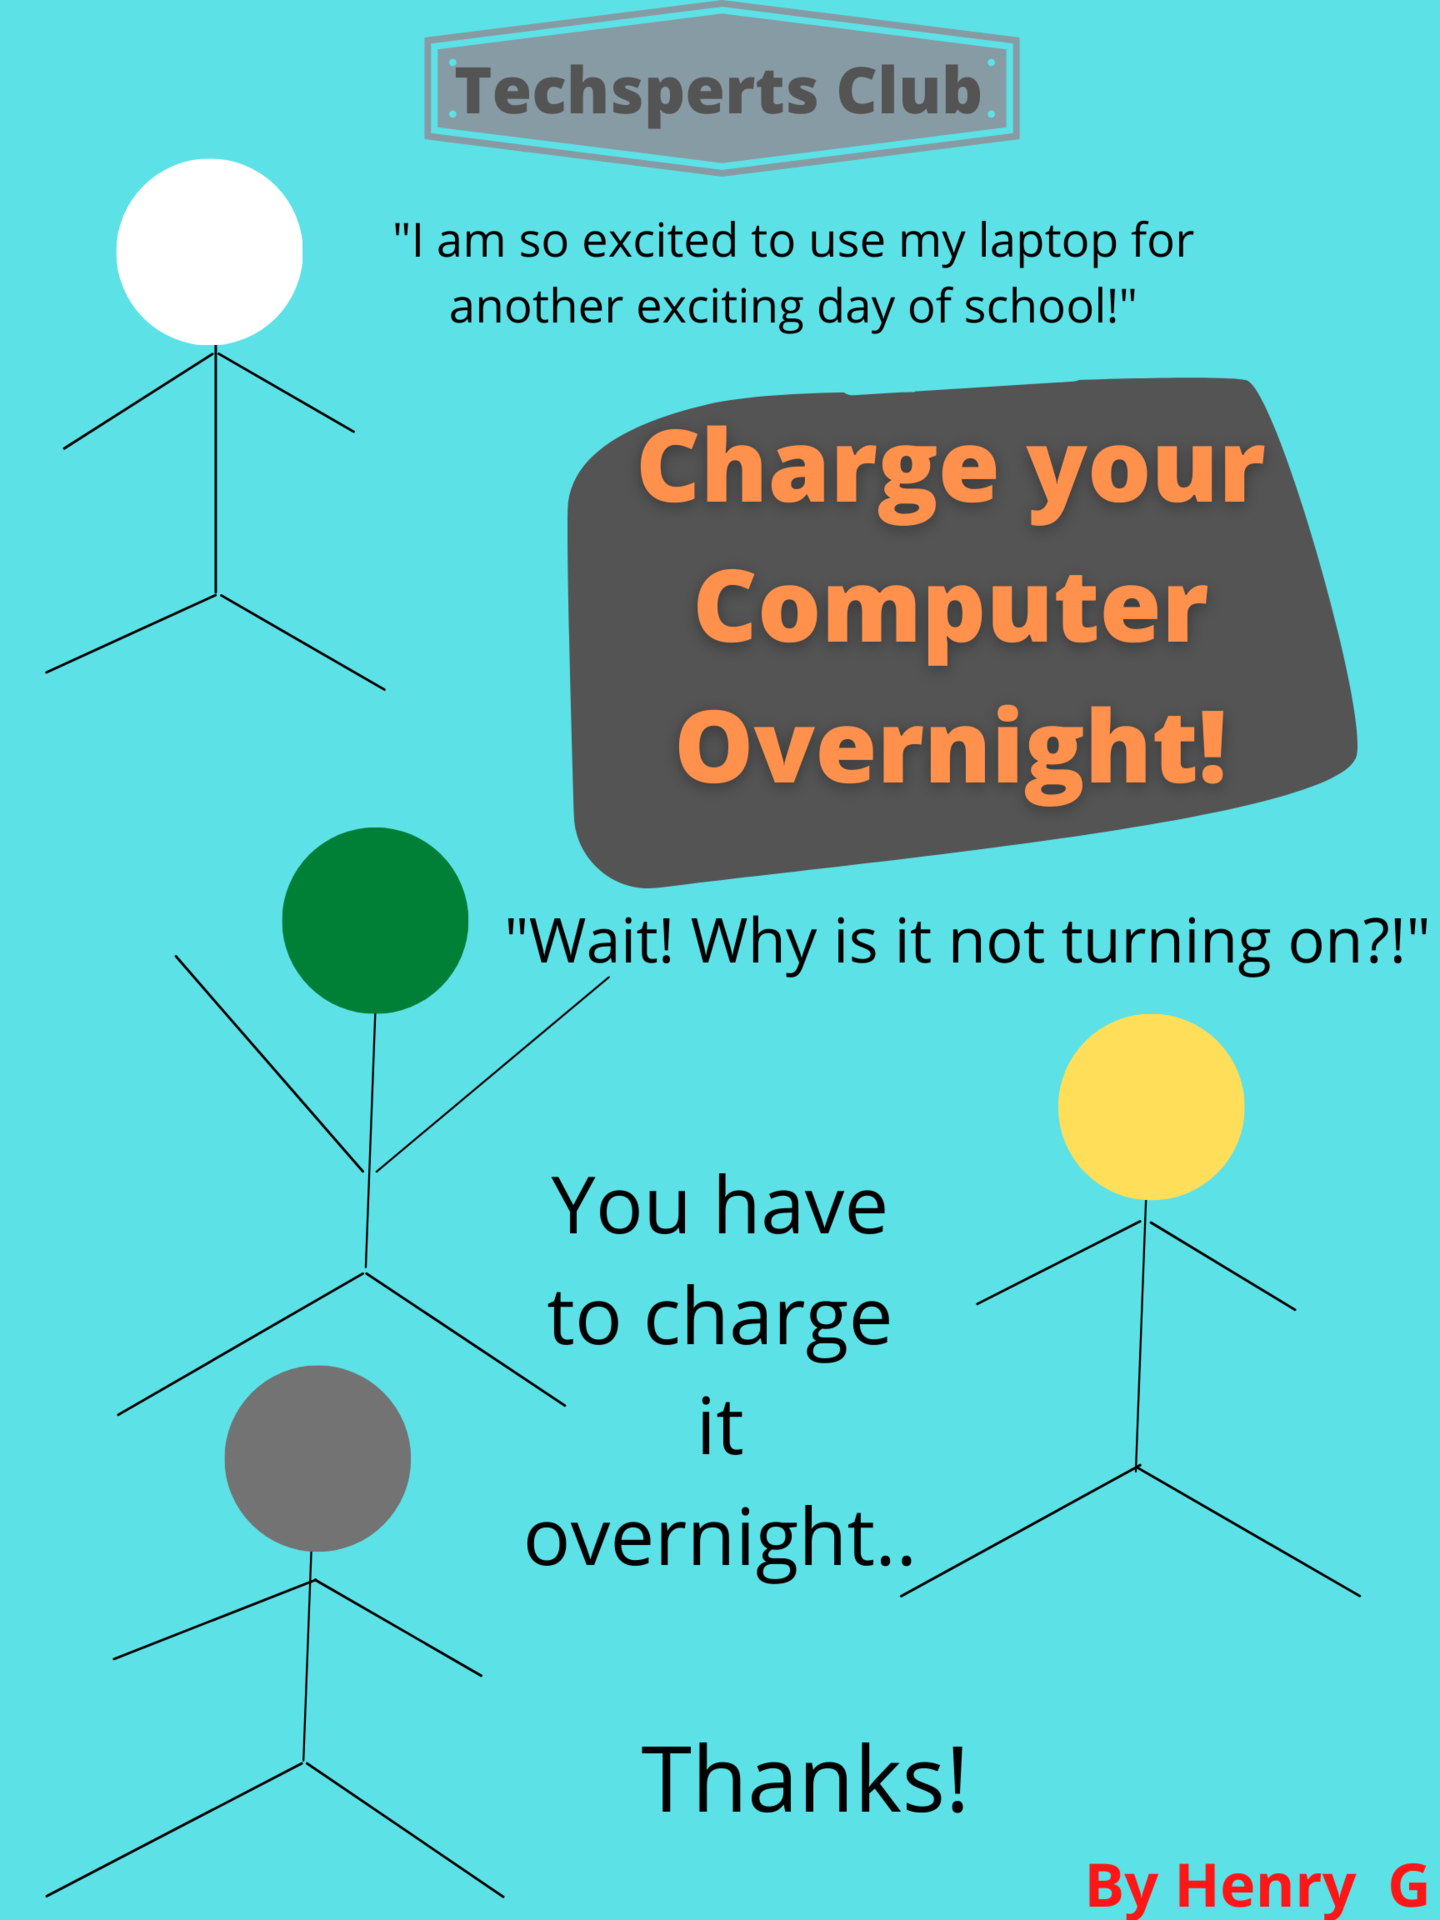 Charge your computer overnight!